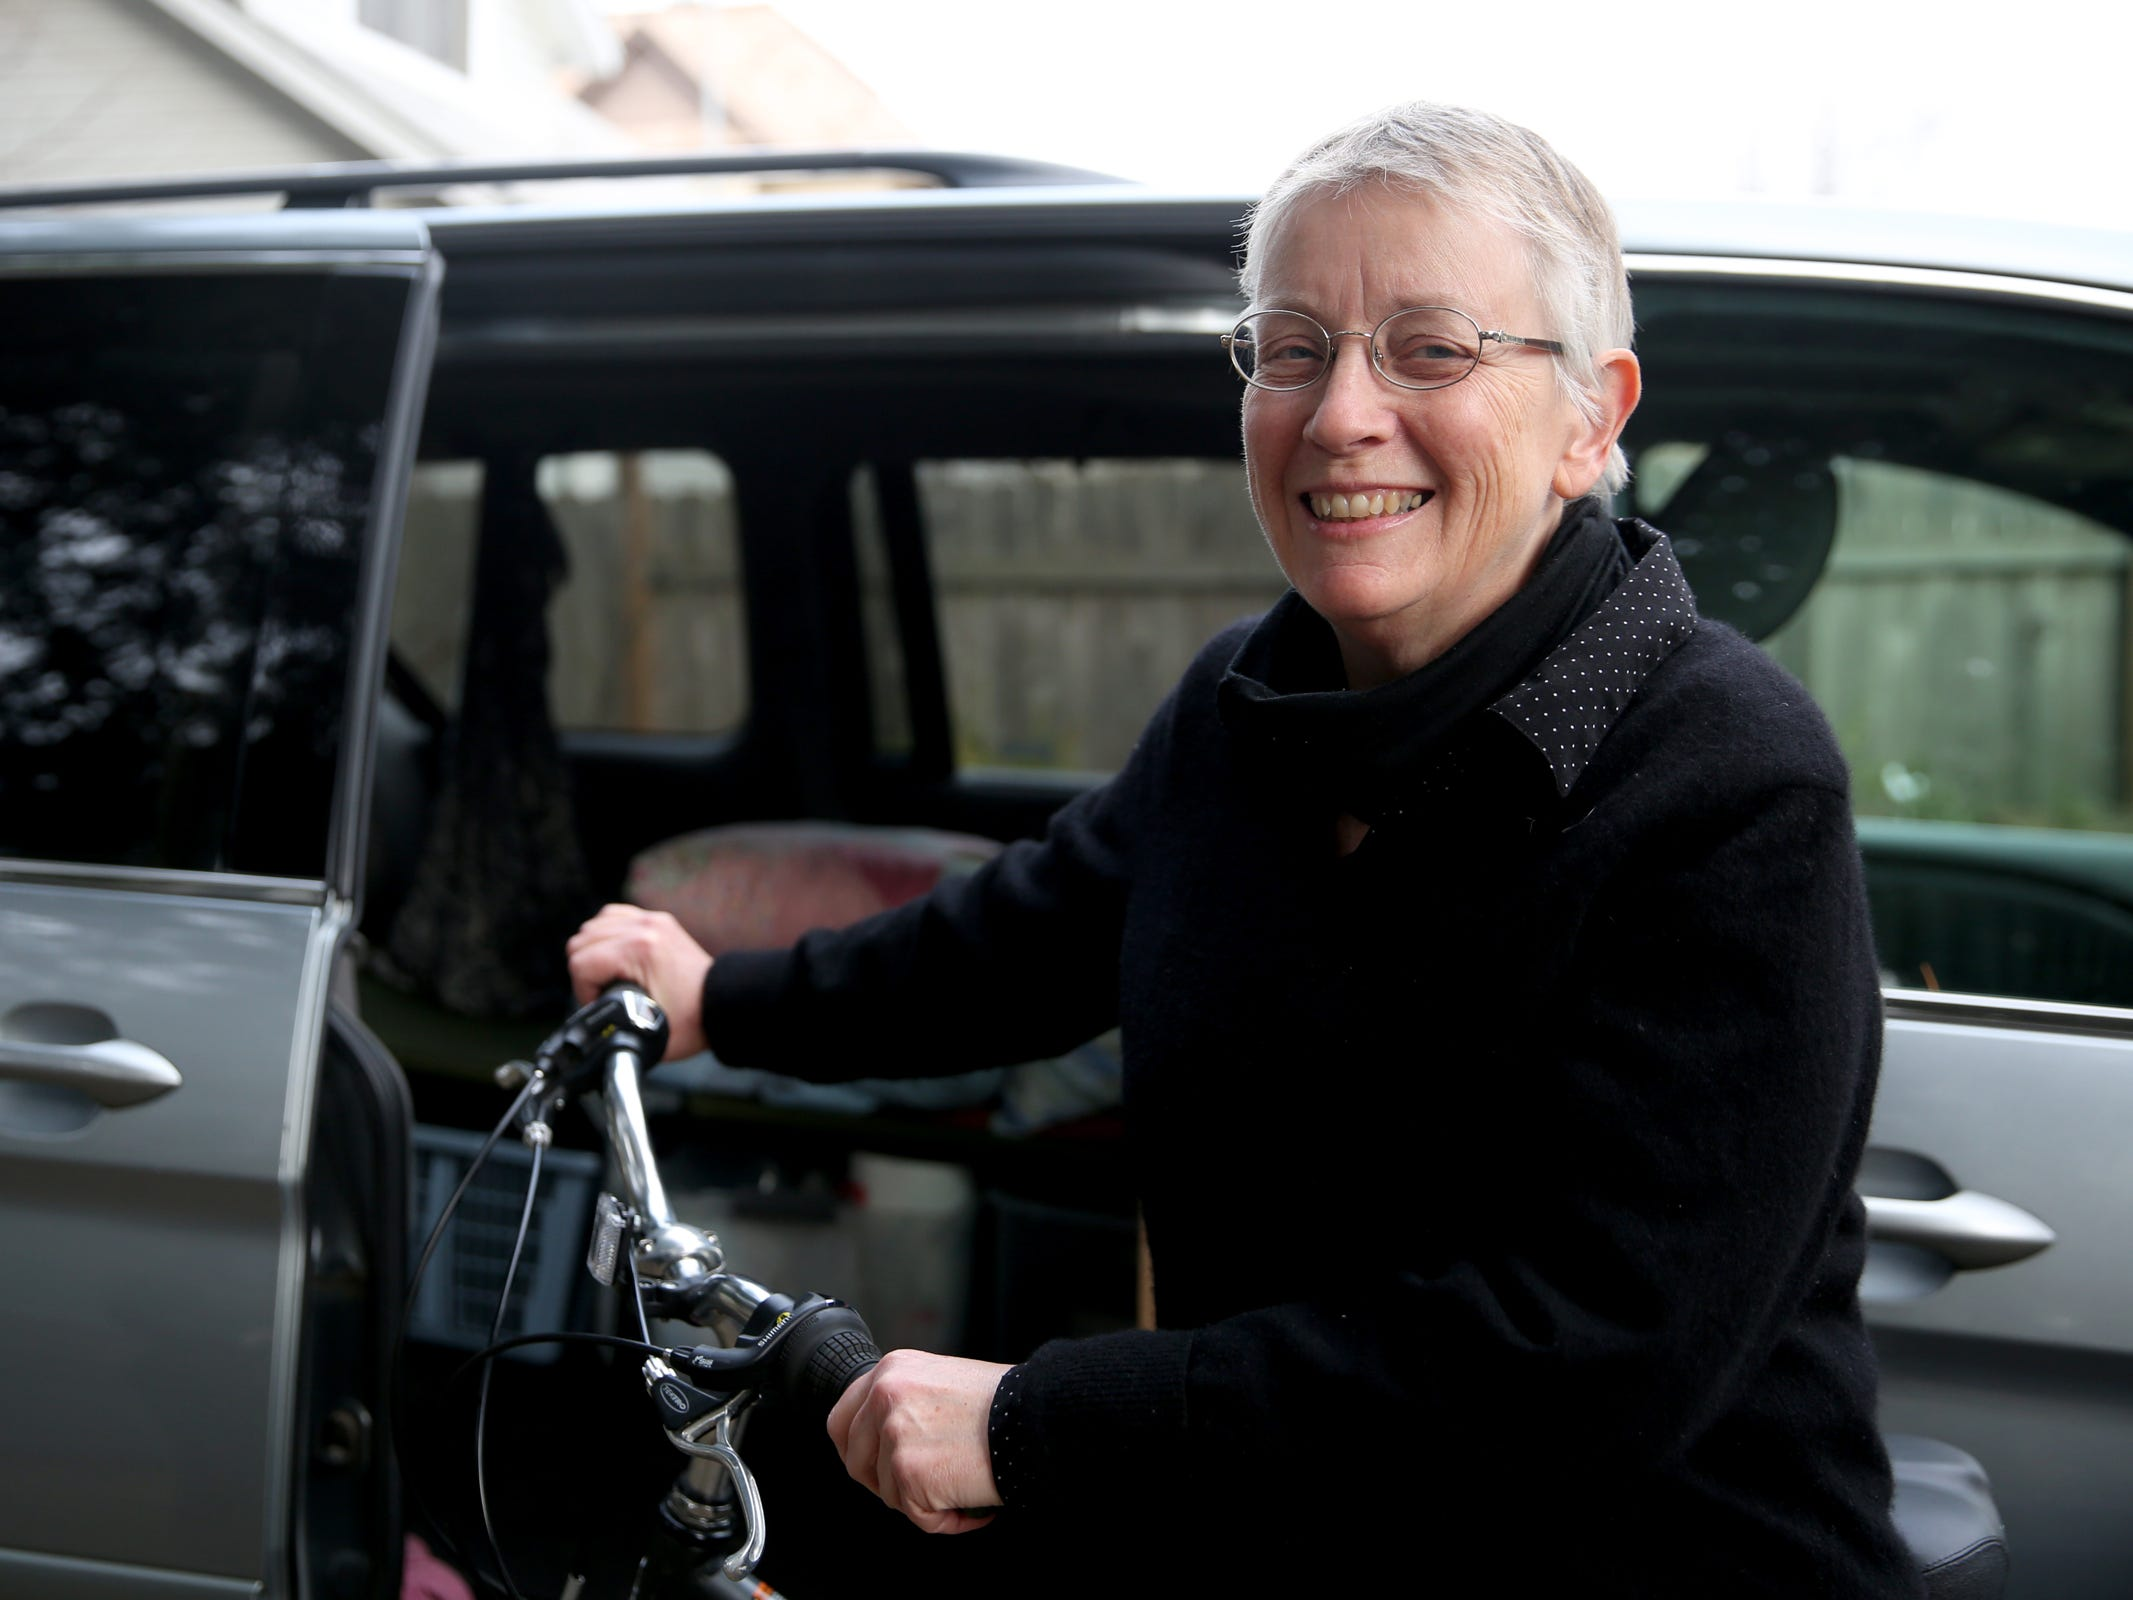 Jean Brougher stands will her bicycle and minivan which she will travel with as she volunteers at an animal shelter near Paradise, California following wildfires. Photographed at Brougher's home in Salem on Friday, Dec. 14, 2018.